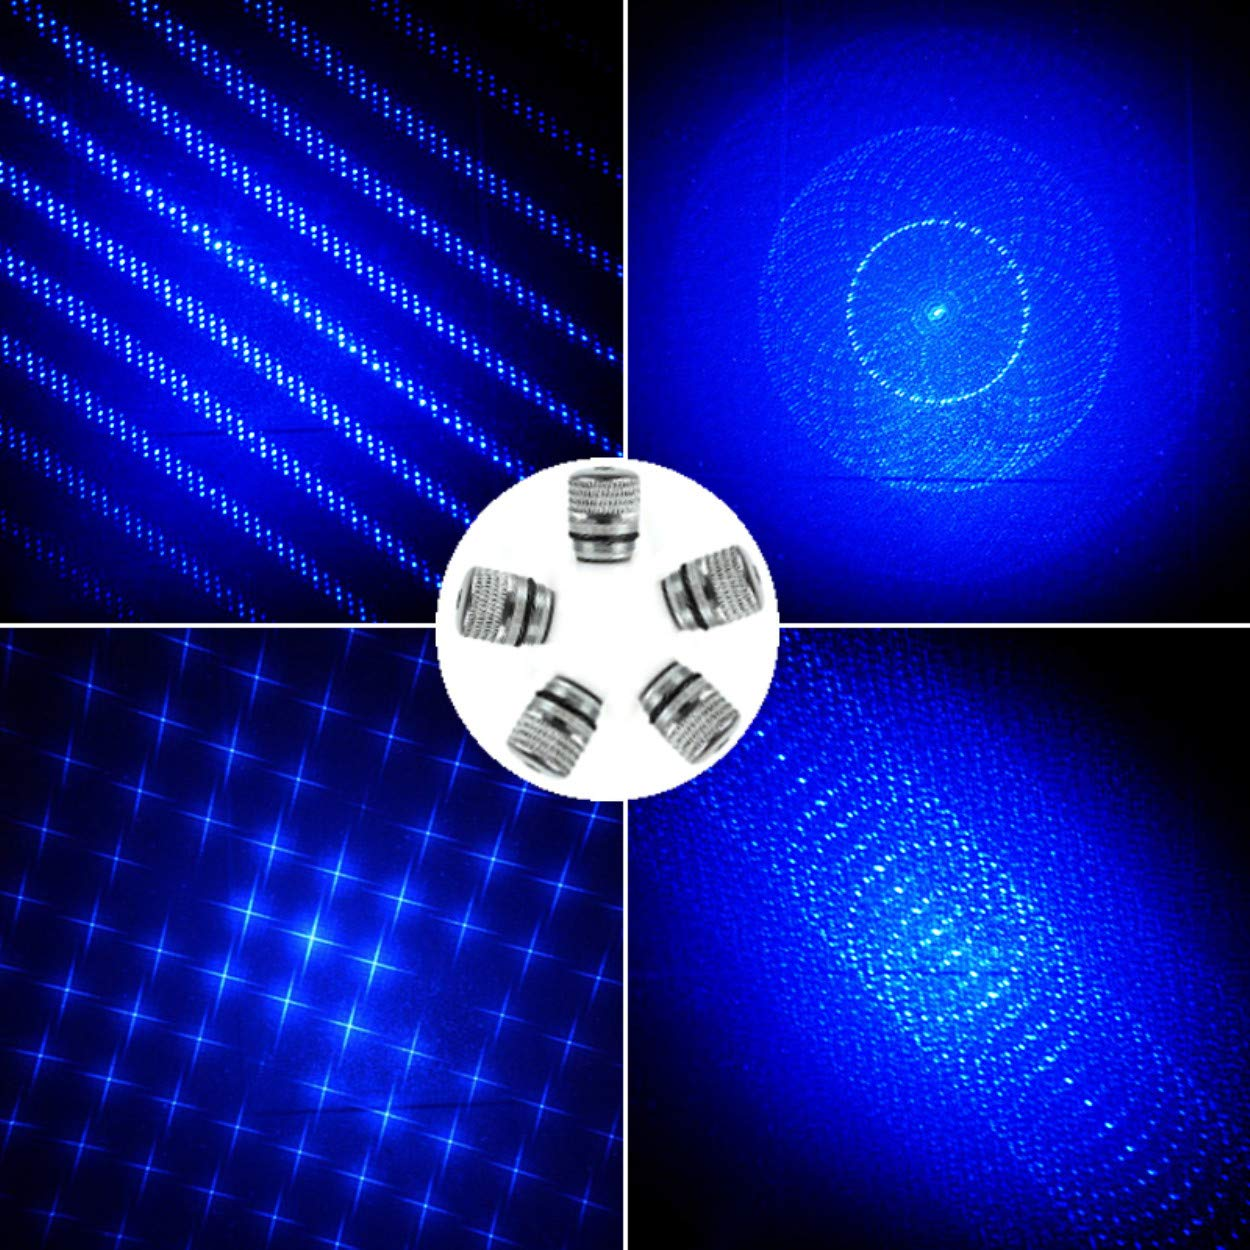 High Power Blue Light LED Pointer Demonstration Projector Laser Outdoor Tourism Camping Fishing pet Toys Education Multimedia Teaching Sand Table Sales Analysis Pointer Pen